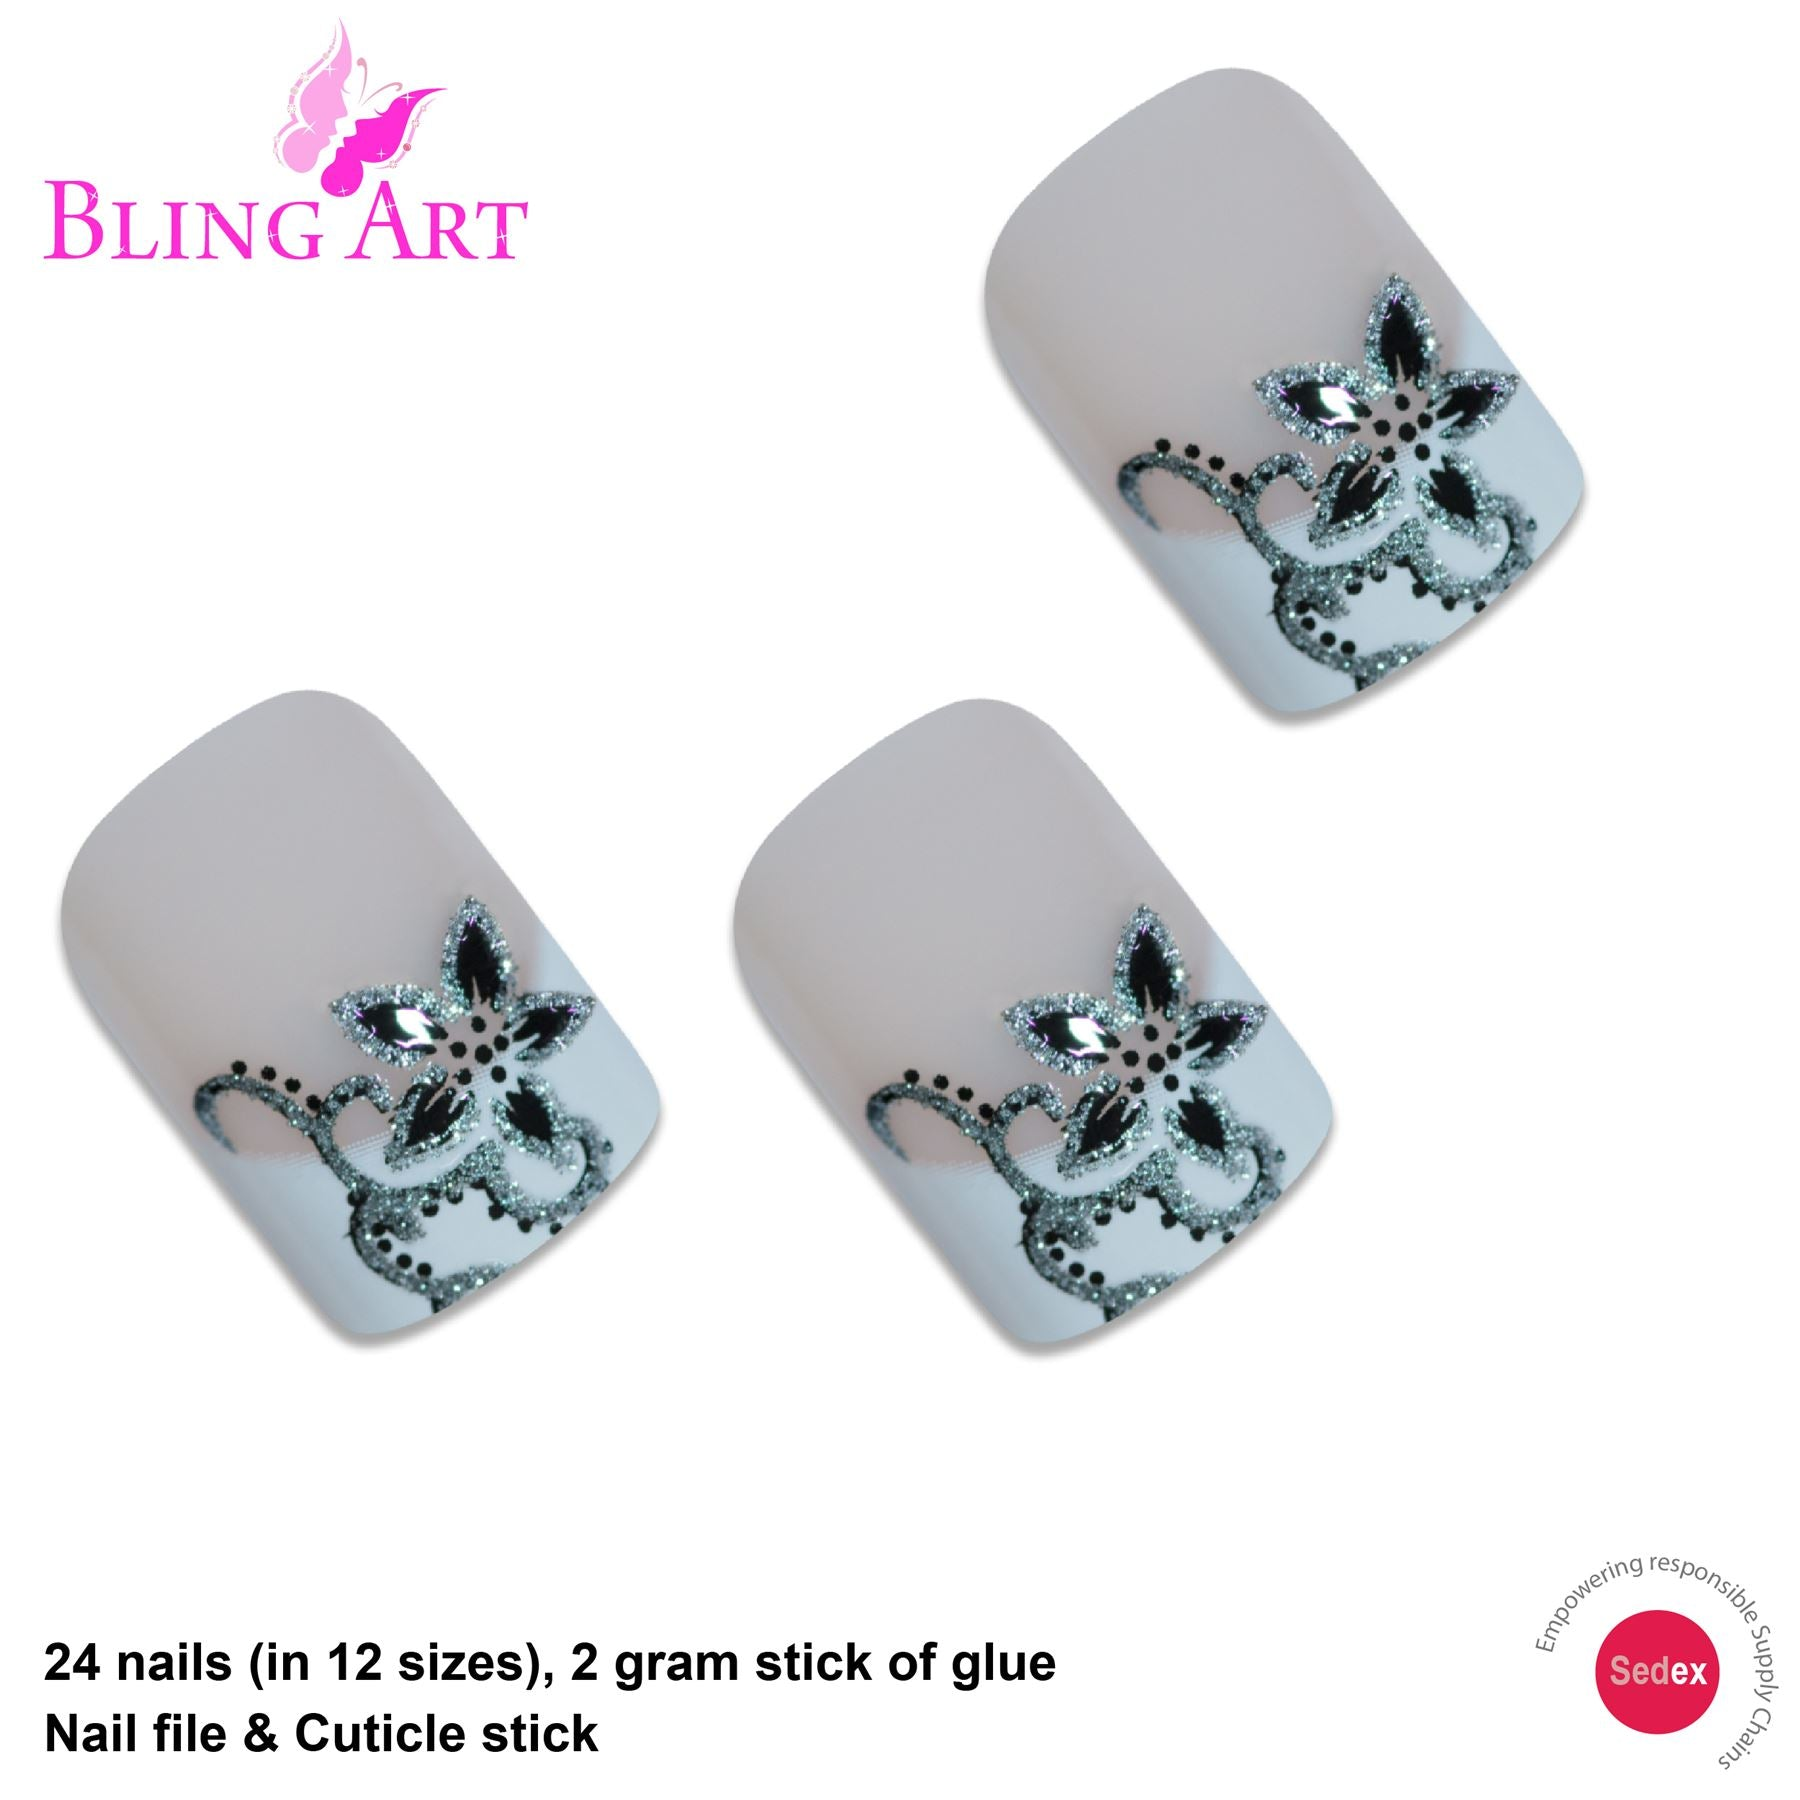 False Nails by Bling Art Black White French Manicure Fake Medium Tips with Glue